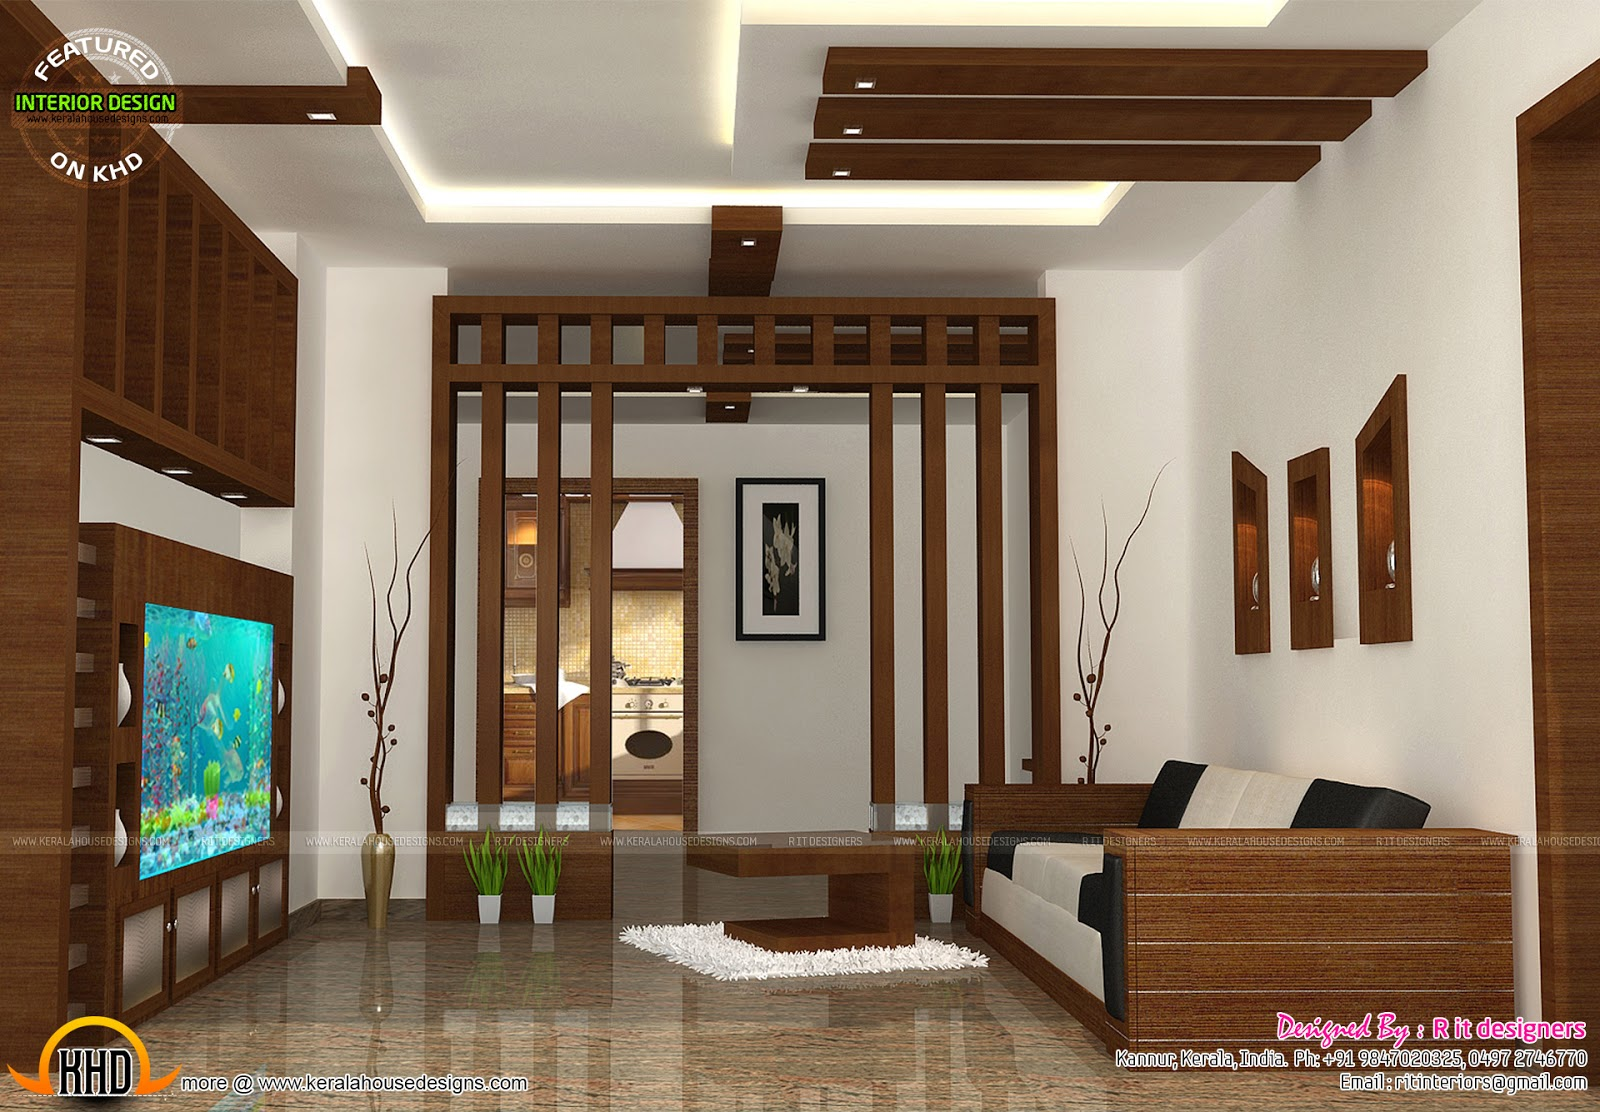 Wooden finish interiors kerala home design and floor plans for Interior design styles living room 2015